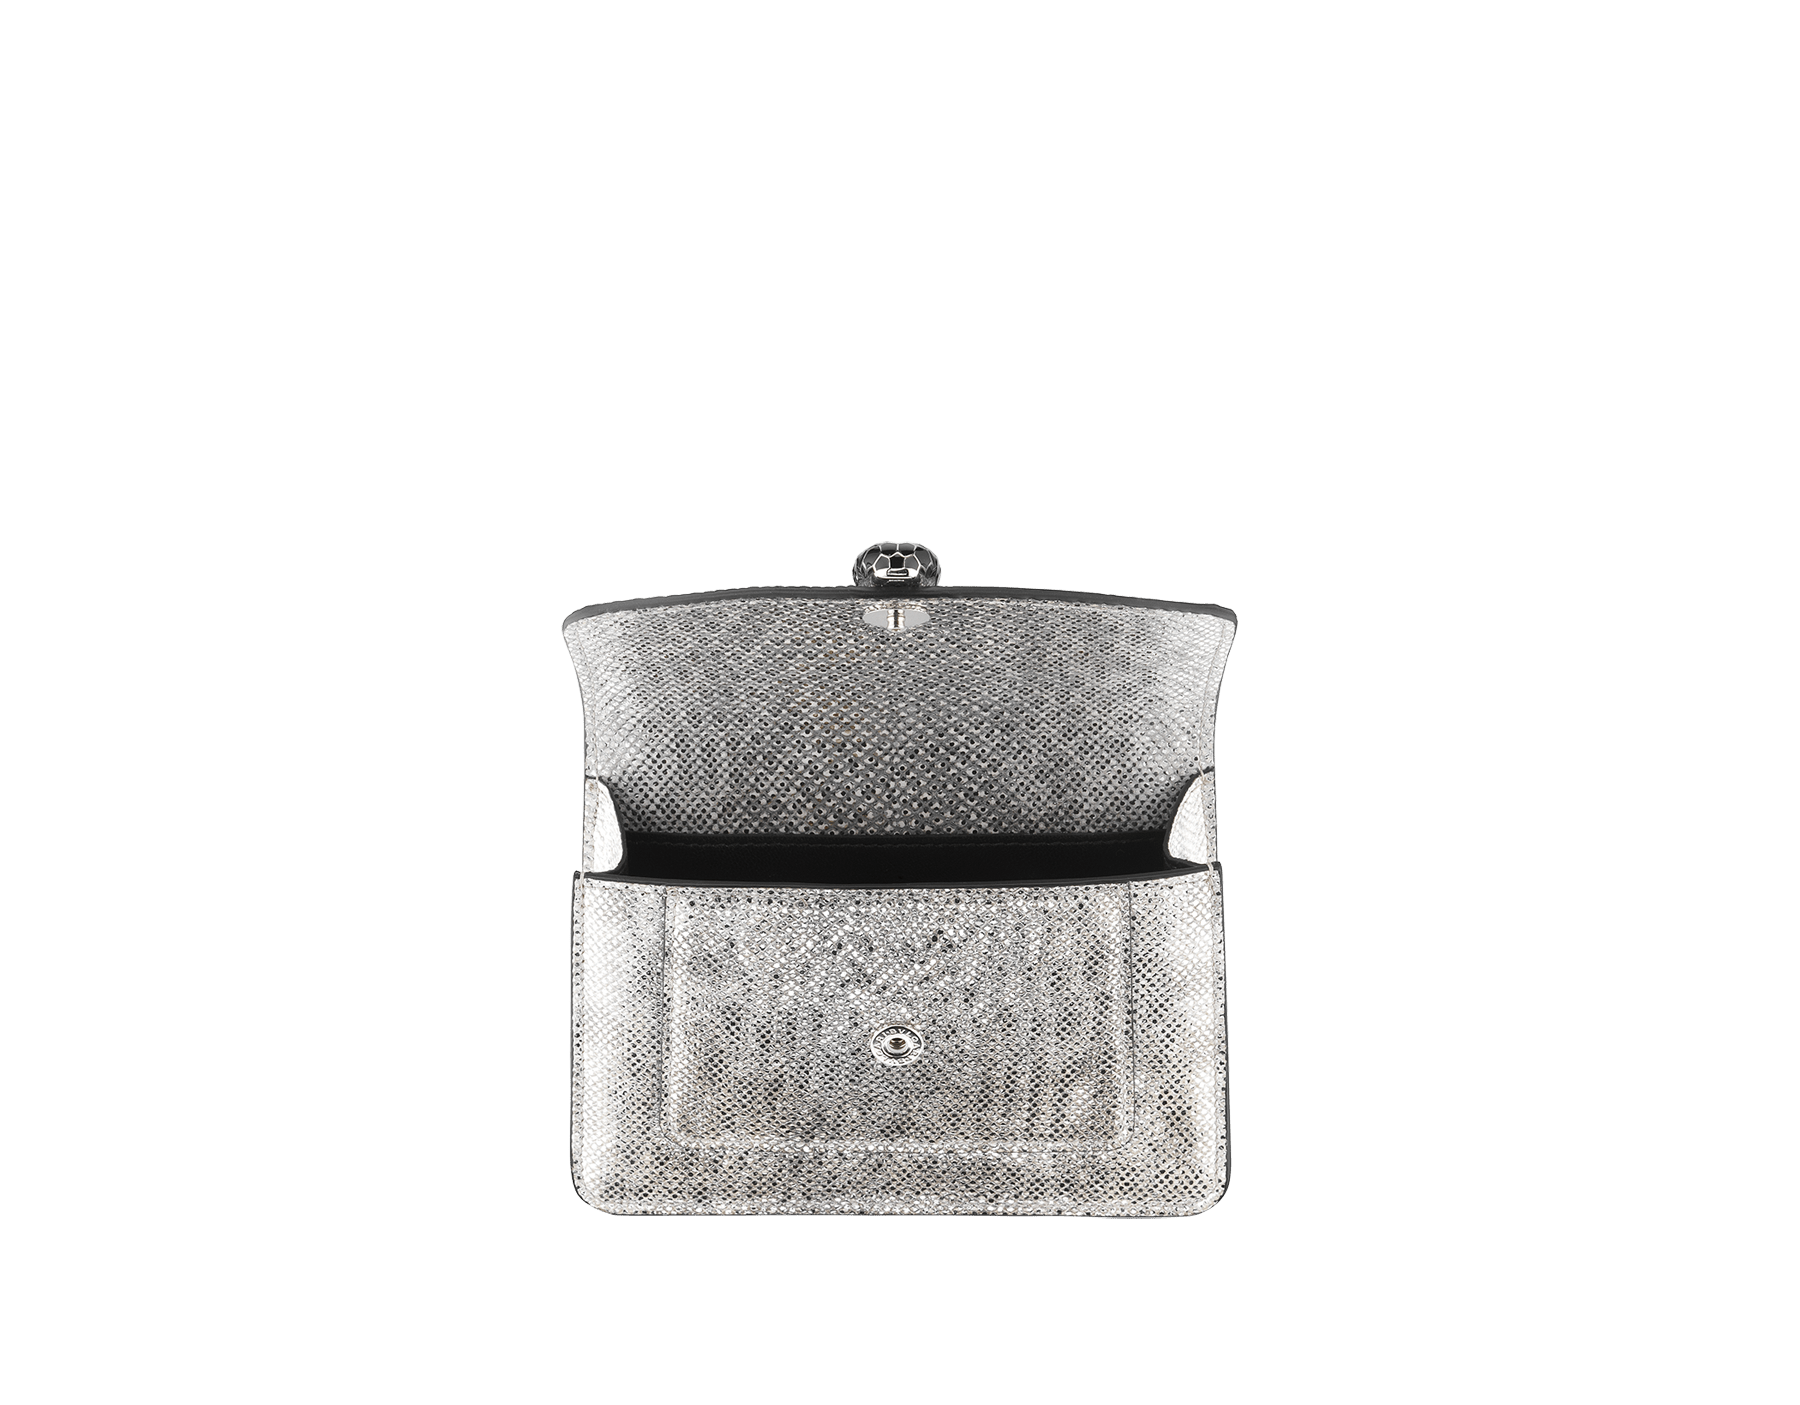 """Serpenti Forever"" micro pochette in white agate metallic karung skin and black nappa leather. Iconic palladium plated brass snakehead stud closure enameled in matte and shiny black and finished with black enamel eyes. SEA-XSPOCHETTE image 2"